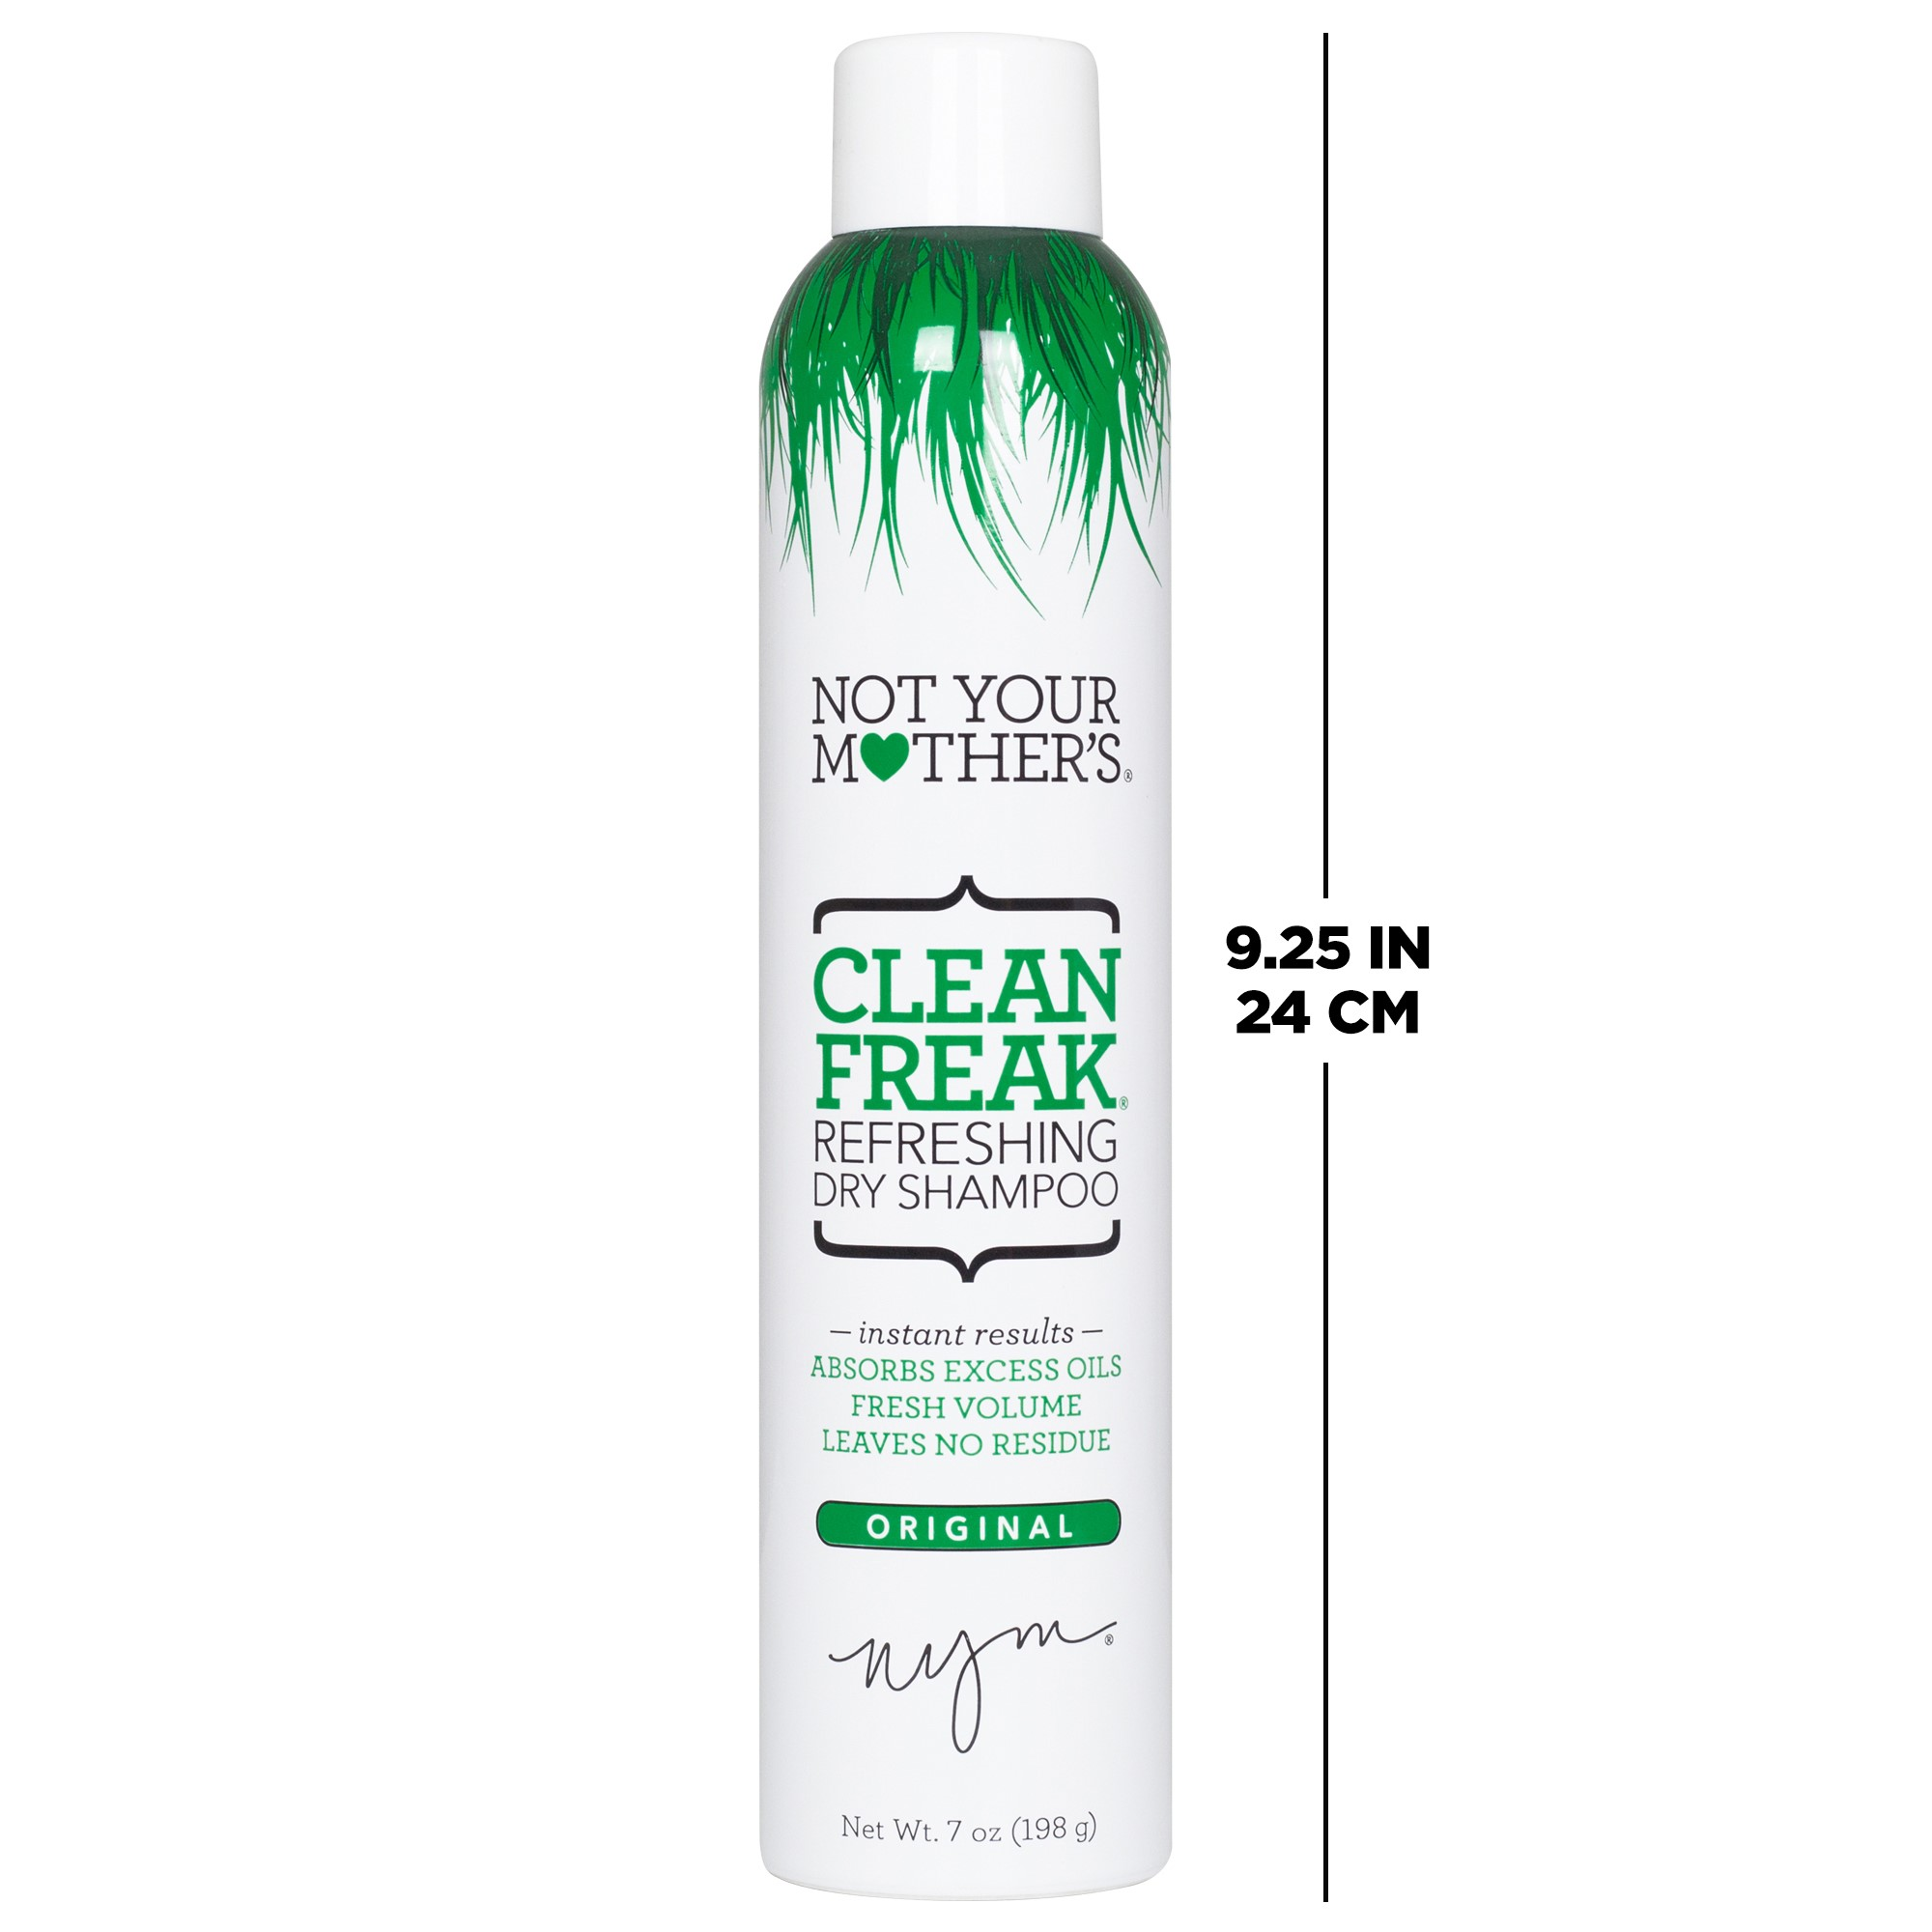 dda640d45f0 Not Your Mother s Clean Freak Refreshing Dry Shampoo